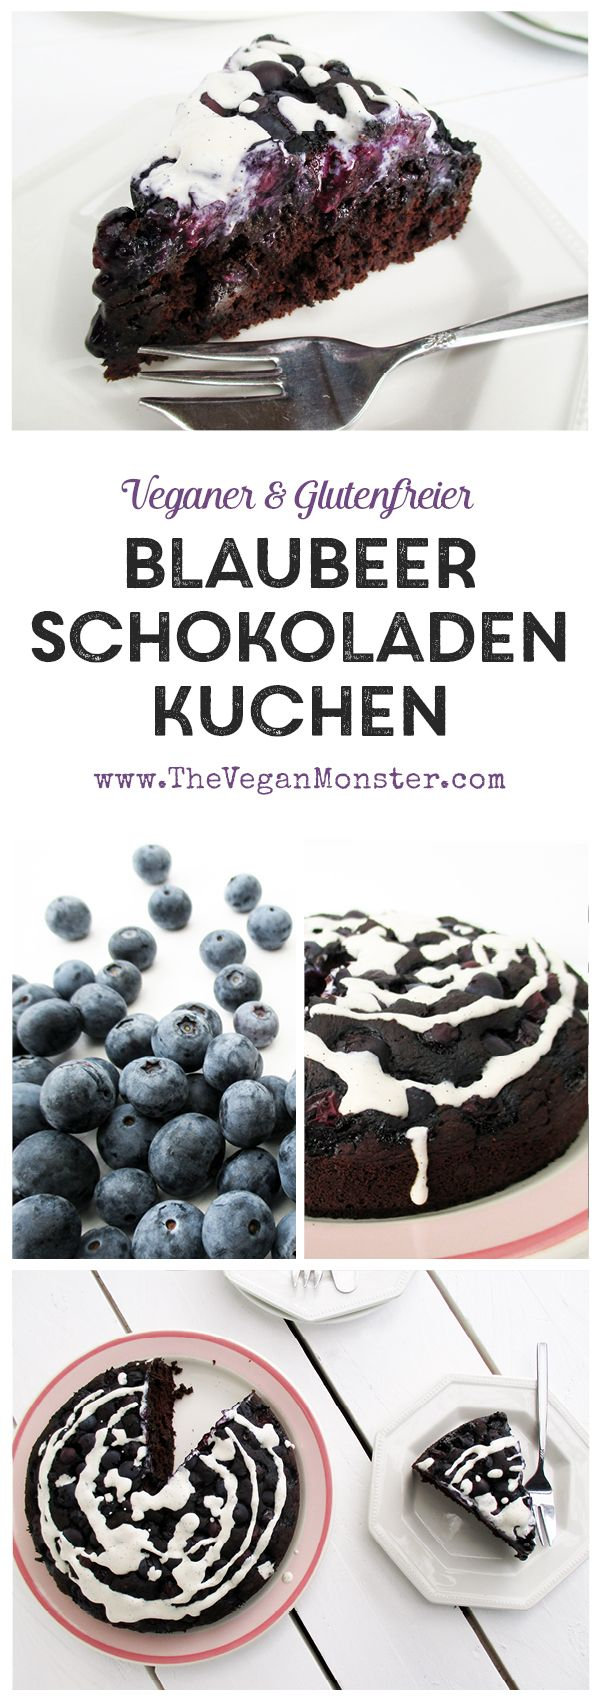 Blueberry Chocolate Cake | Das Vegan Monster - vegane & glutenfreie Rezepte